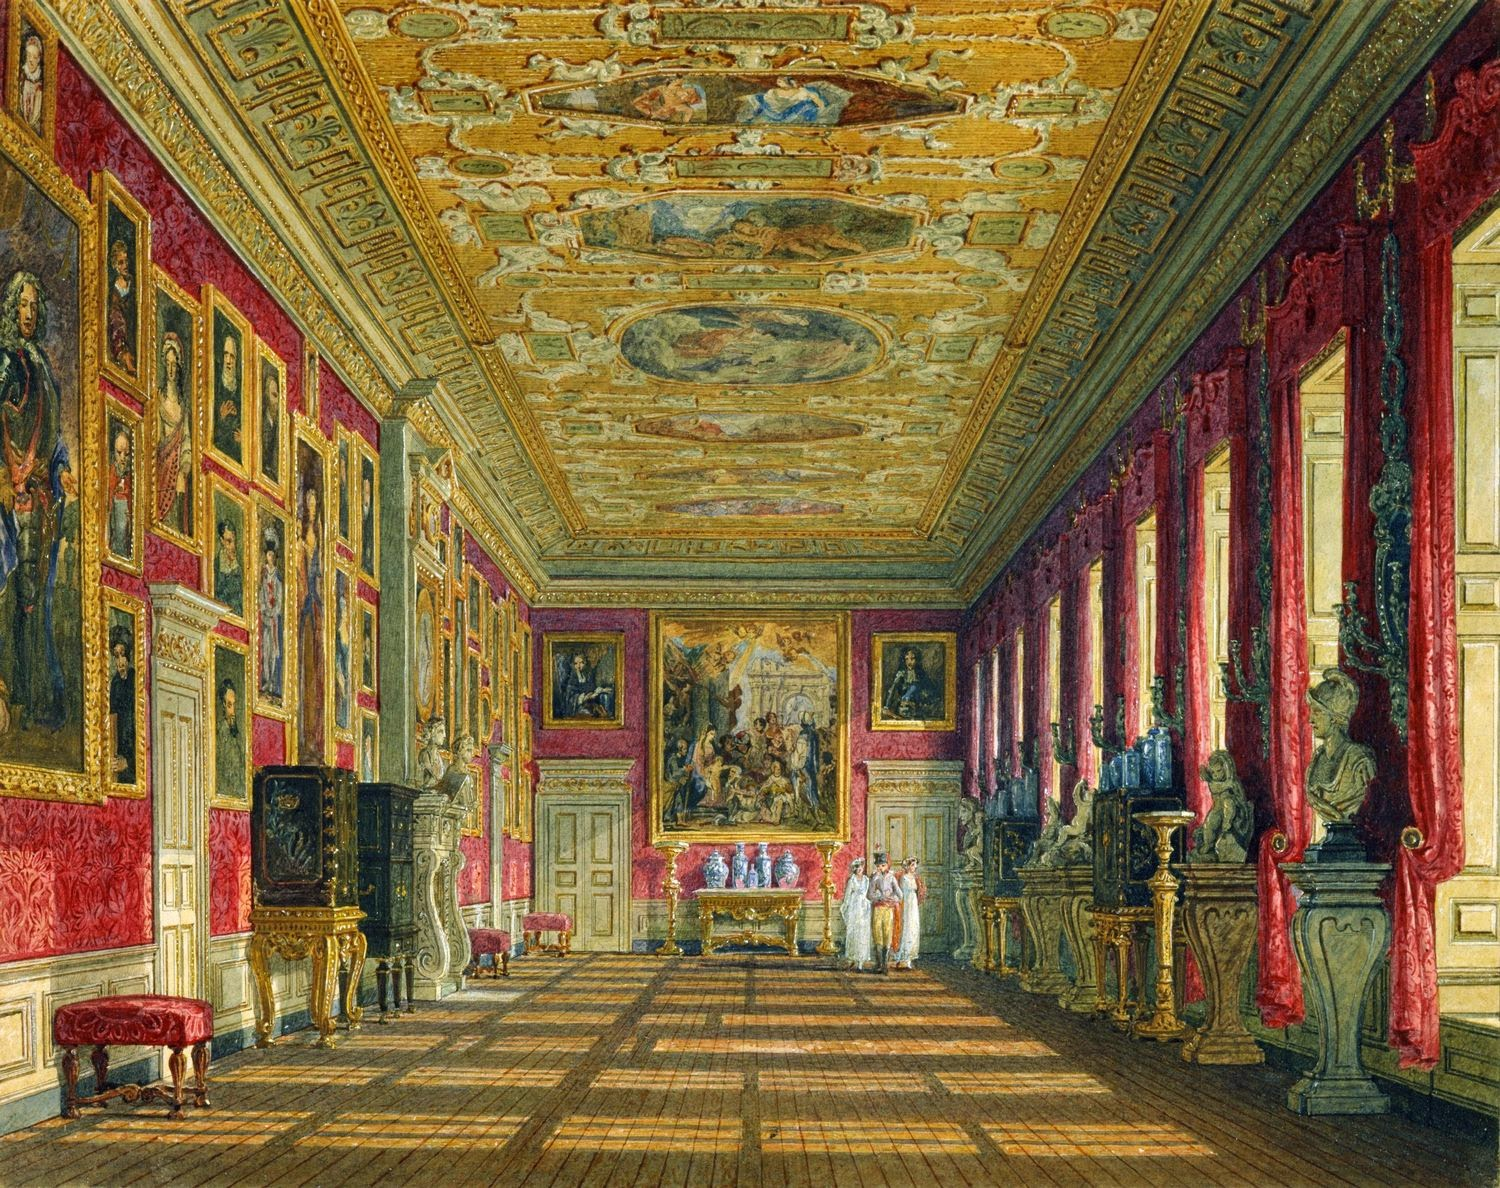 Spencer alley documented interiors Kensington palace state rooms